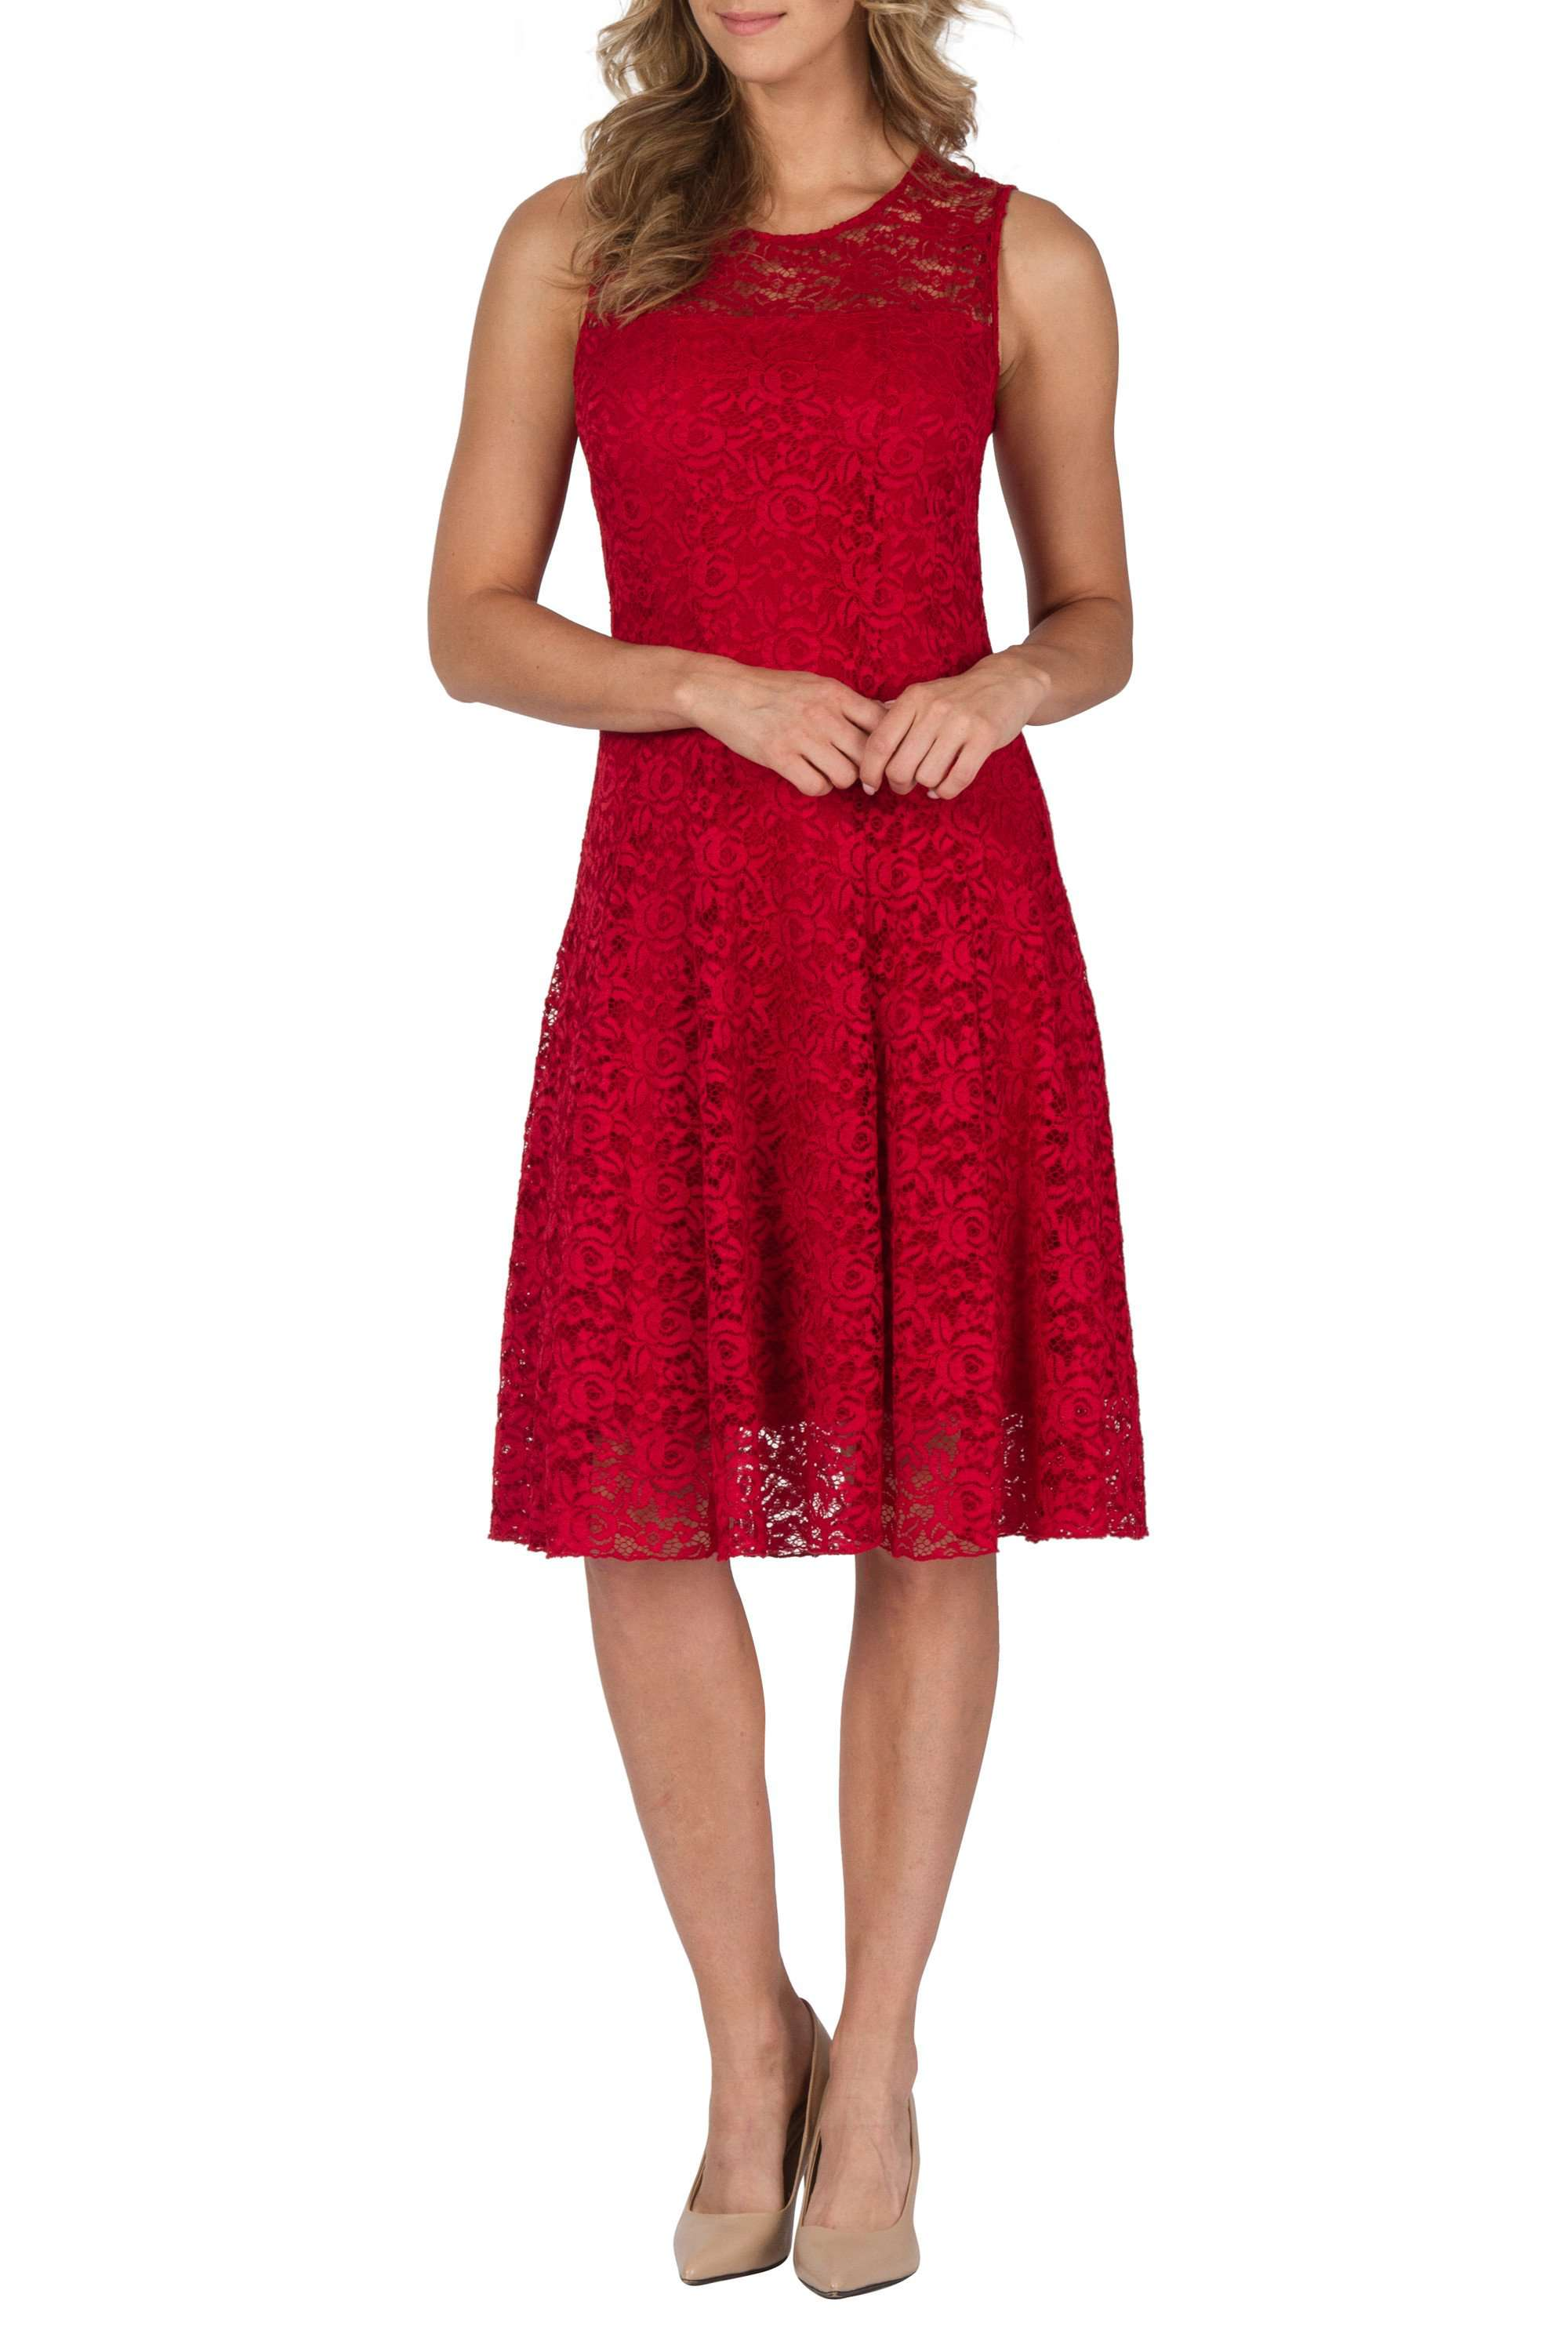 Red Lace Dress Special Occasions - Yvonne Marie